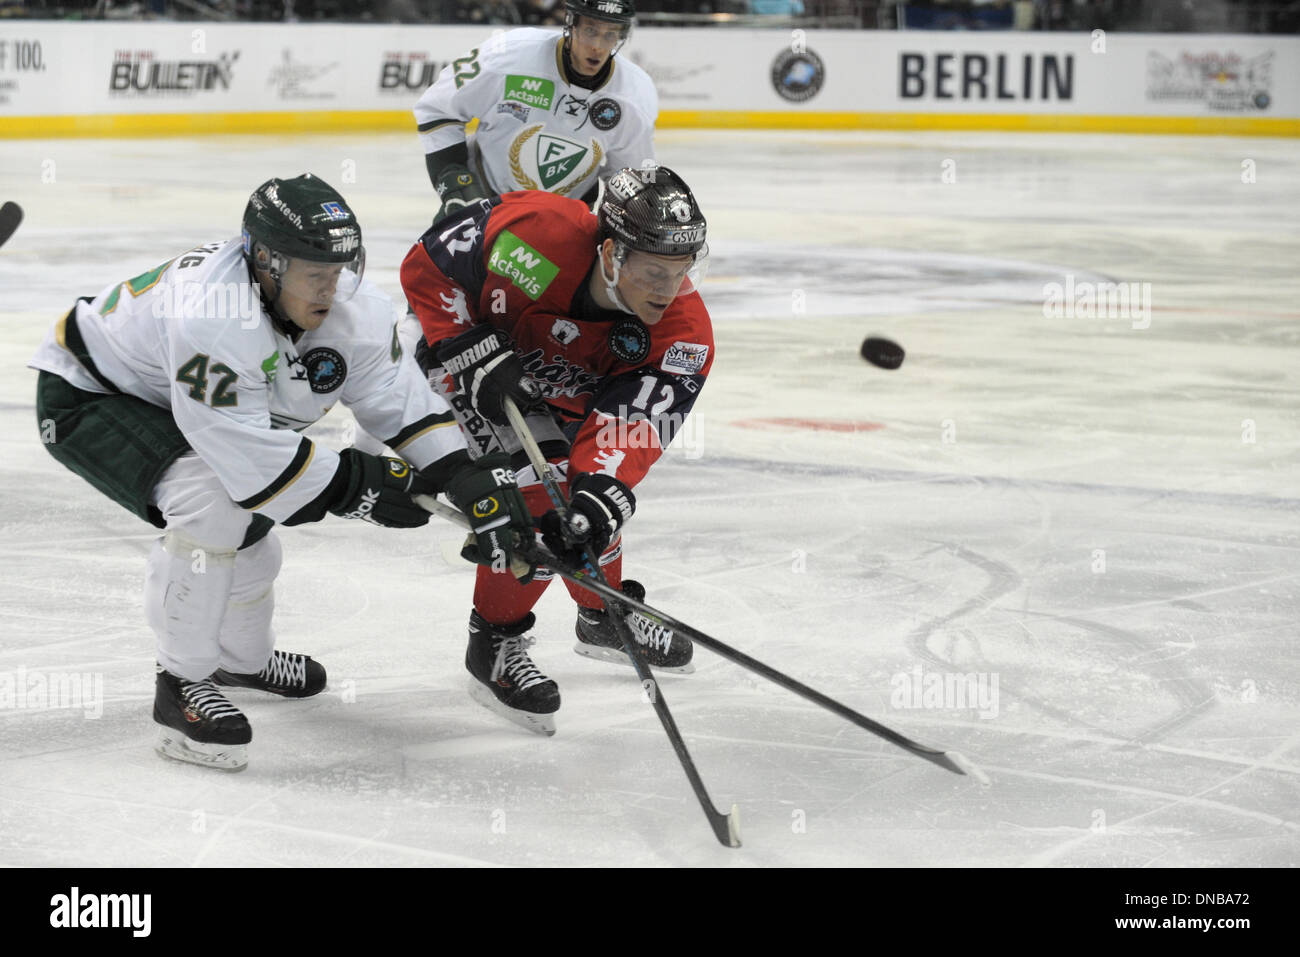 Berlin, Germany. 20th Dec, 2013. Joakim Hilding (L-R) of Farjestad BK vies for the ball with Laurin Braun of Eisbaren Berlin during the ice hockey European Trophy final Group A match Eisbaeren Berlin vs Farjestad BK at the O2 World in Berlin, Germany, 20 December 2013. Photo: Oliver Mehlis/dpa/Alamy Live News - Stock Image